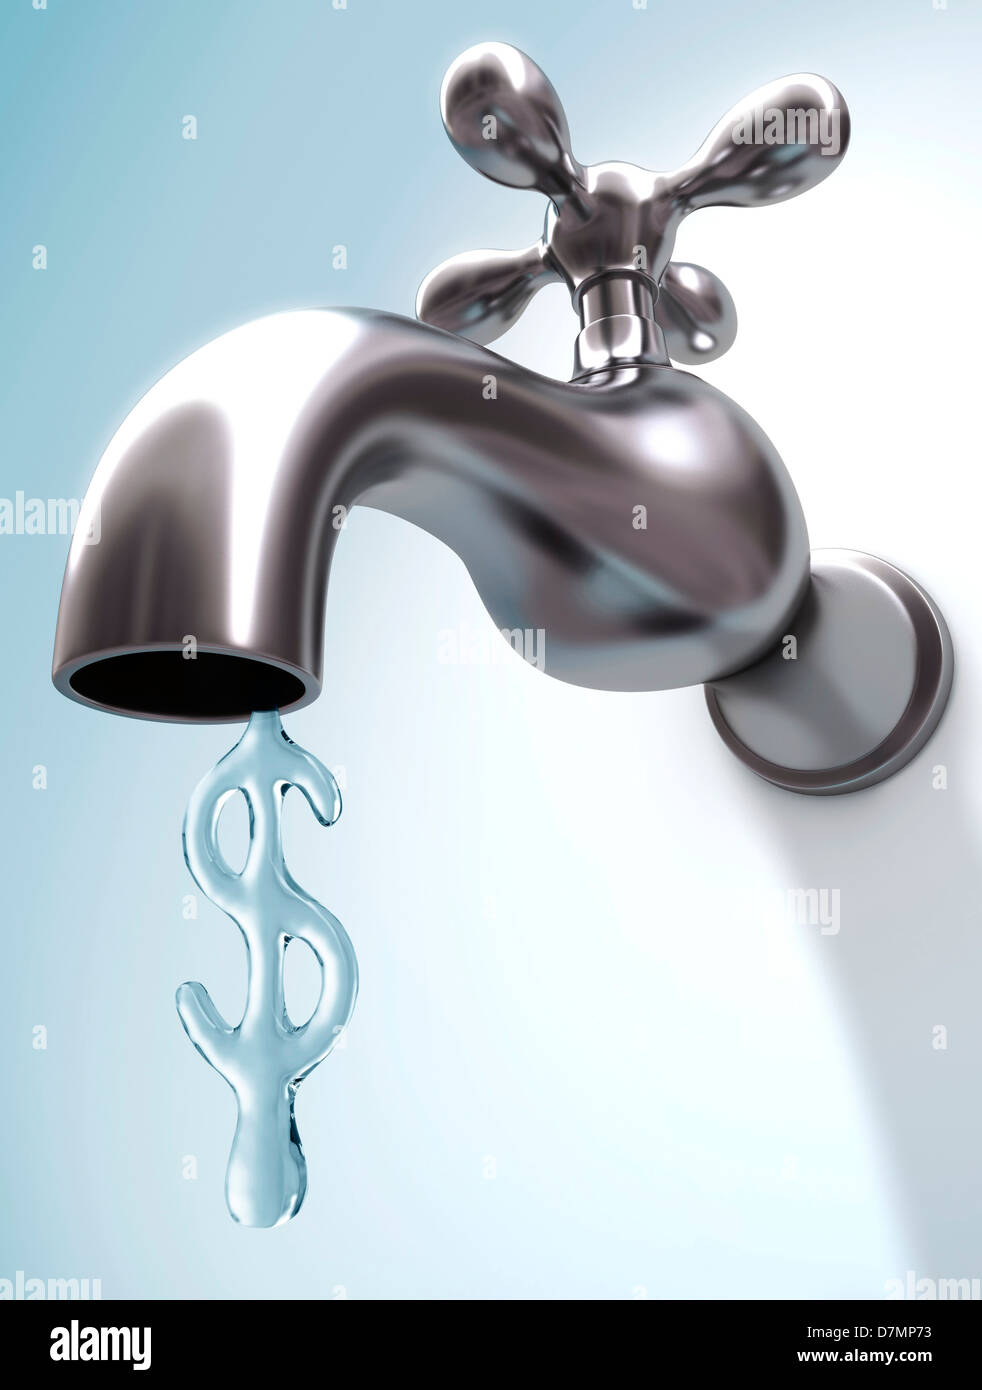 Cost of water, conceptual artwork - Stock Image